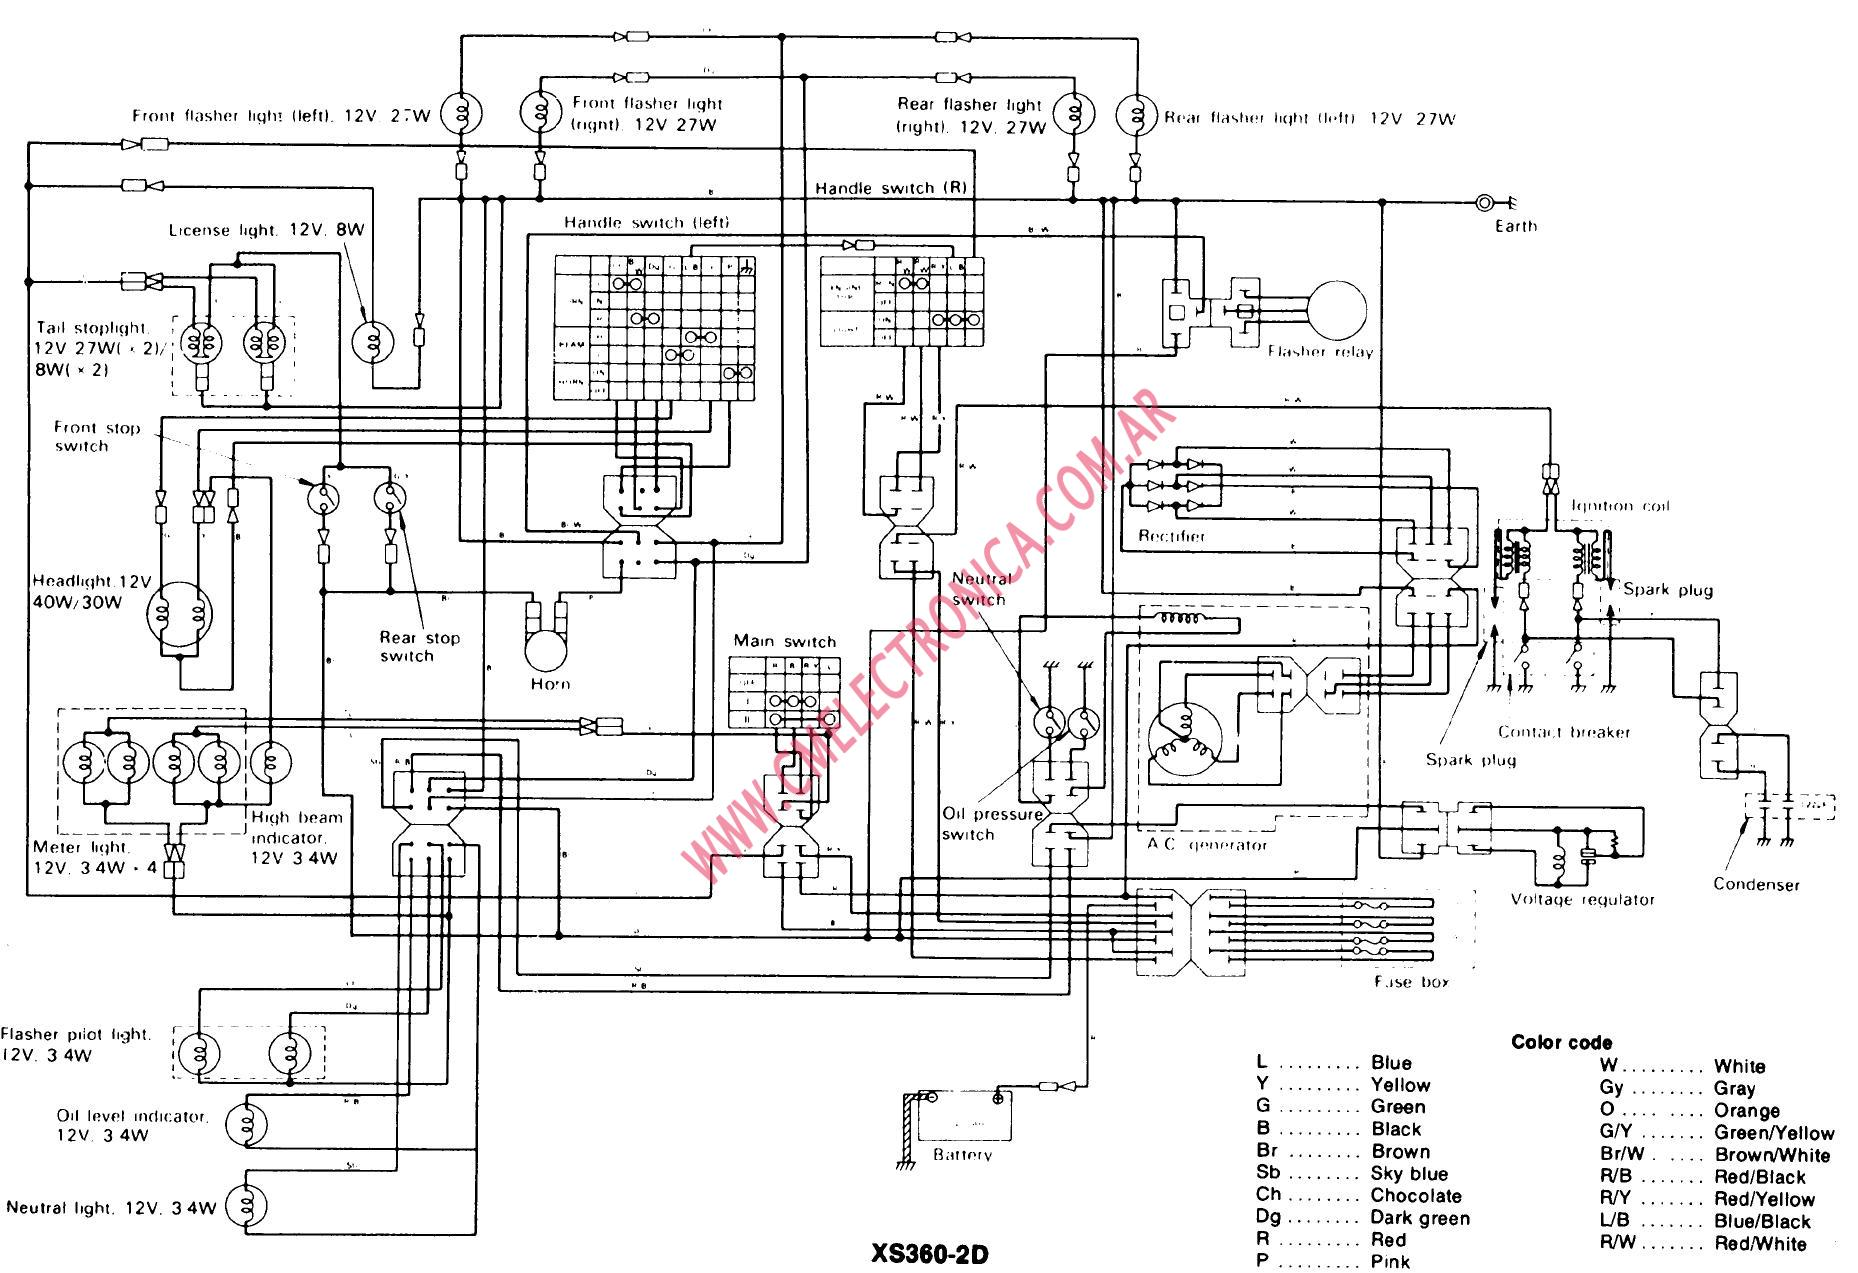 Honda Xr600r Wiring Diagram on 1986 honda trx200sx wiring diagram